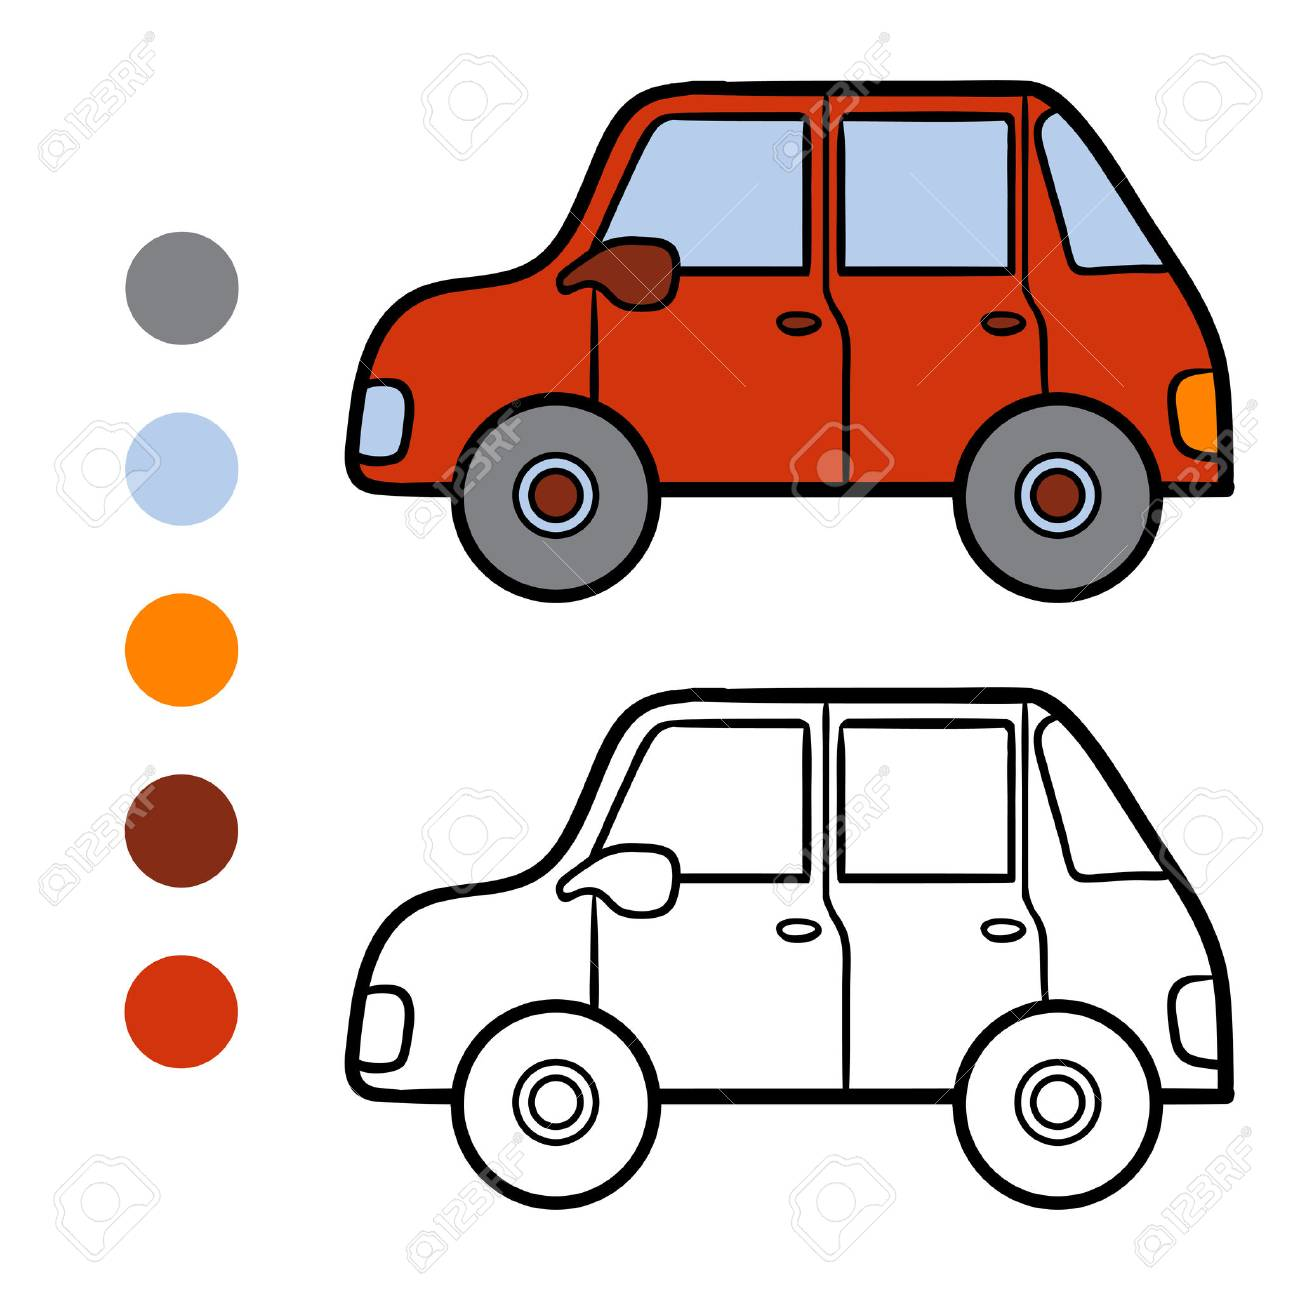 Coloring Book For Children Car Stock Vector